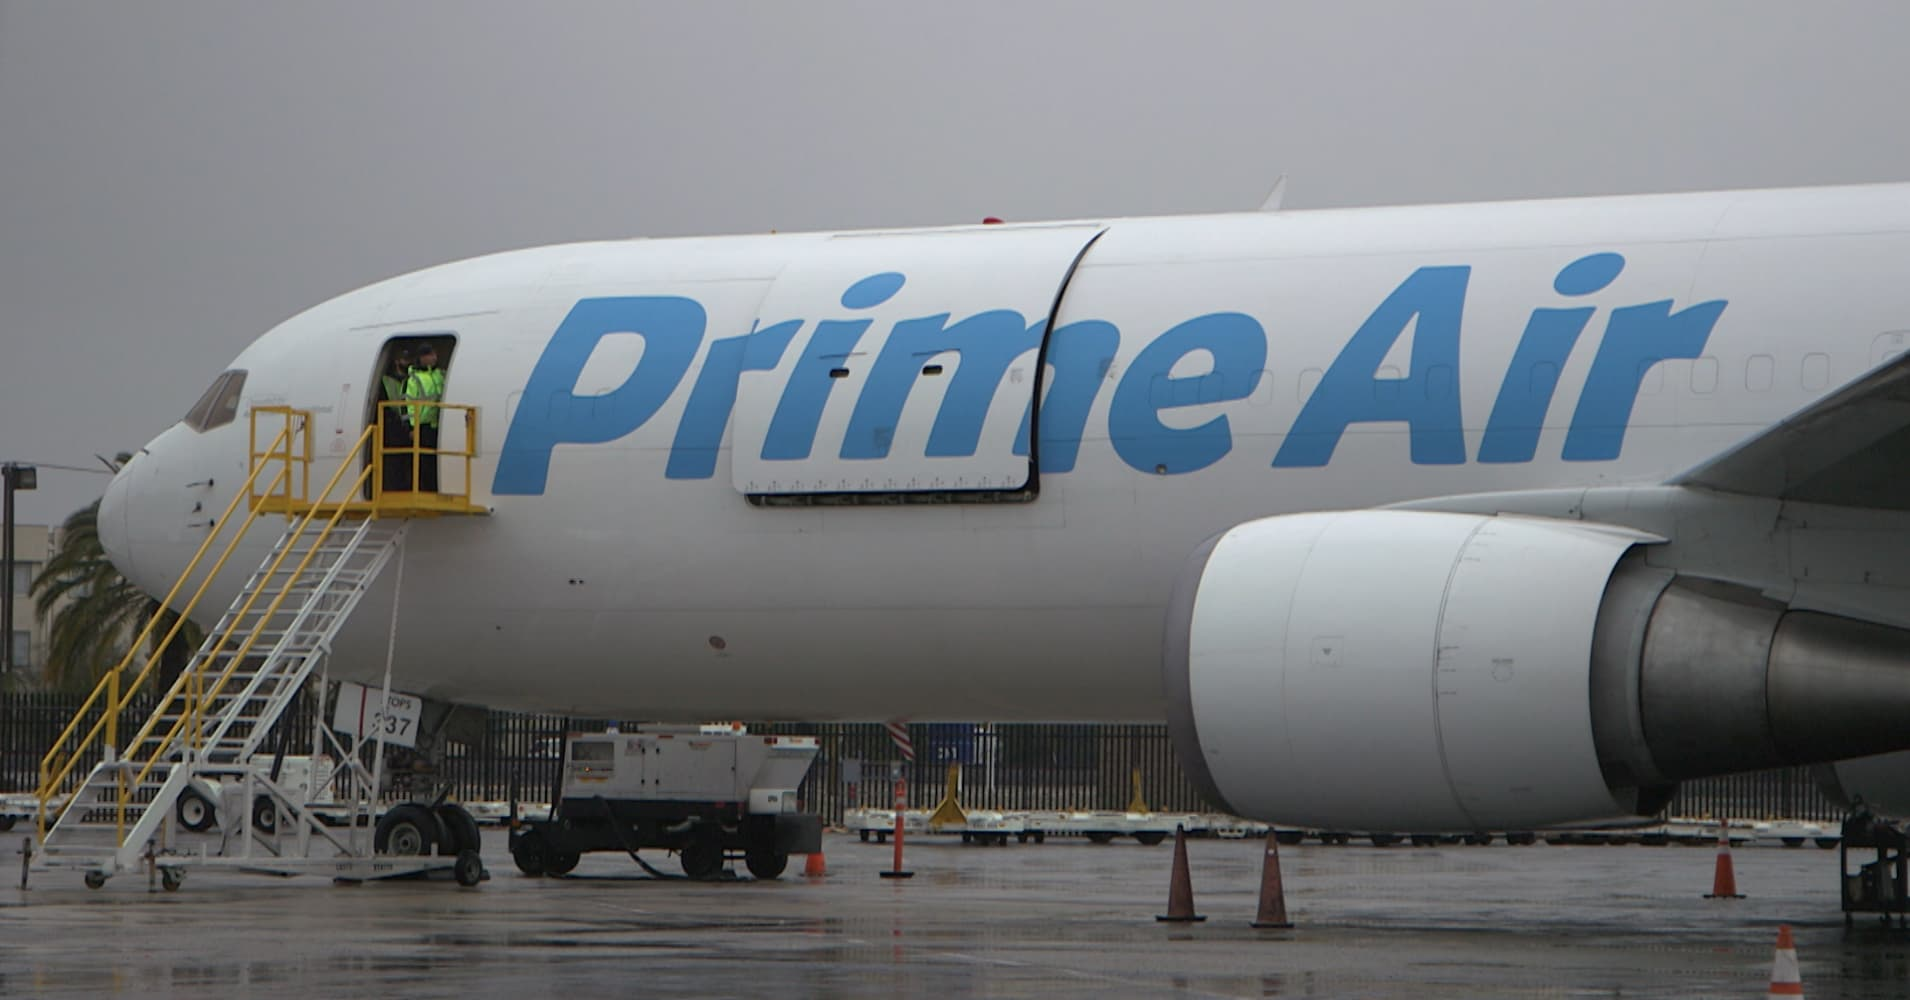 Amazon is Rapidly Expanding its Air Fleet to Handle More Shipping, but FedEx Isn't Worried